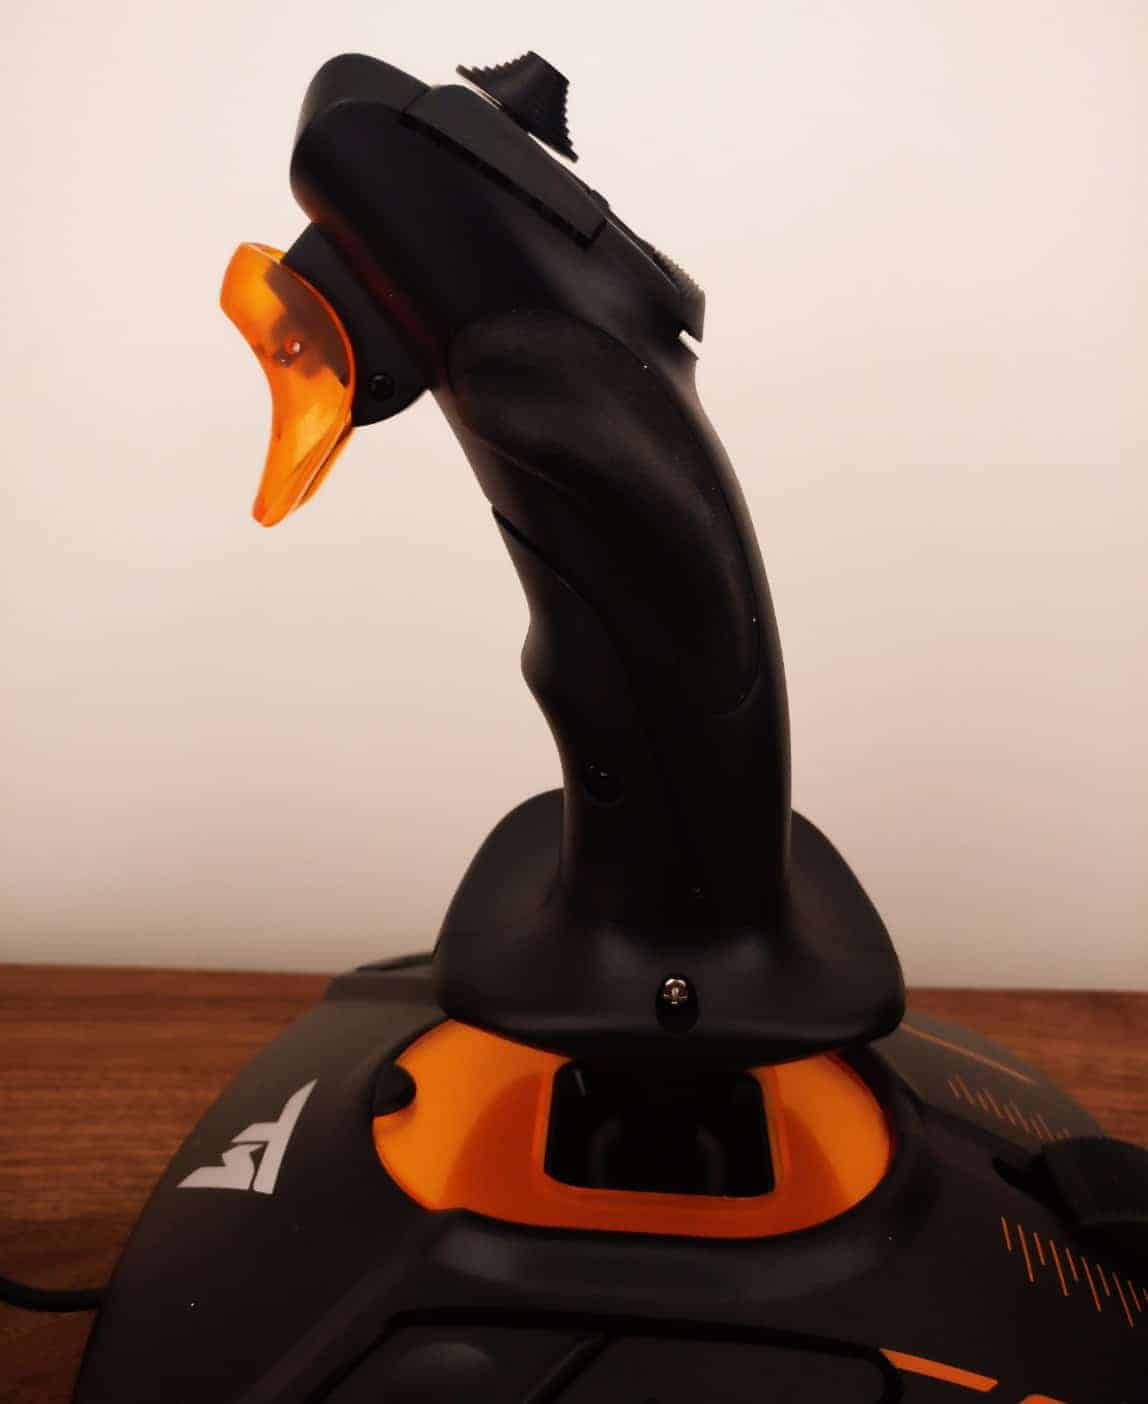 Thrustmaster-Flightstick-Photos31 Thrustmaster T.16000M FCS Hotas Joystick Review